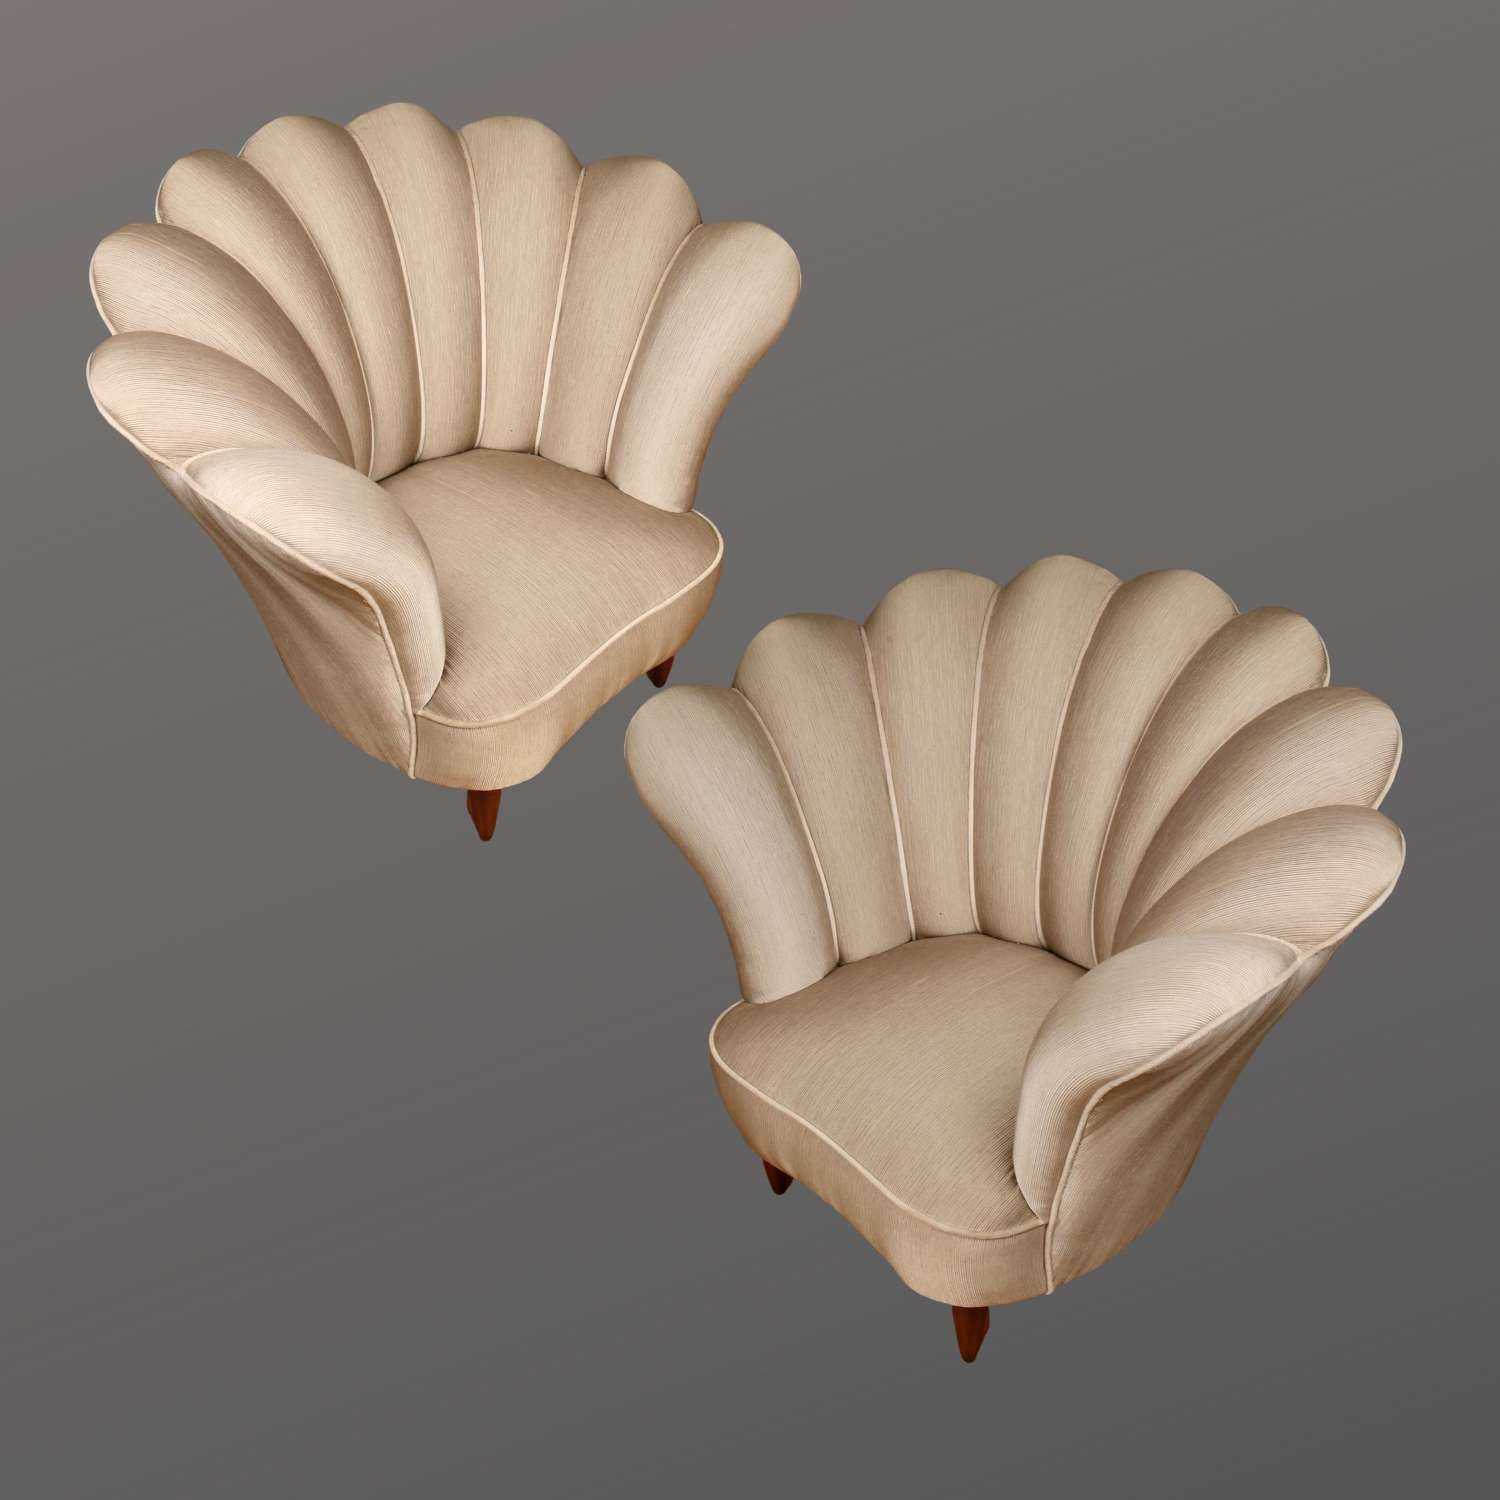 A Pair of Italian Scalloped Shaped Chairs, Mid-century Modern.